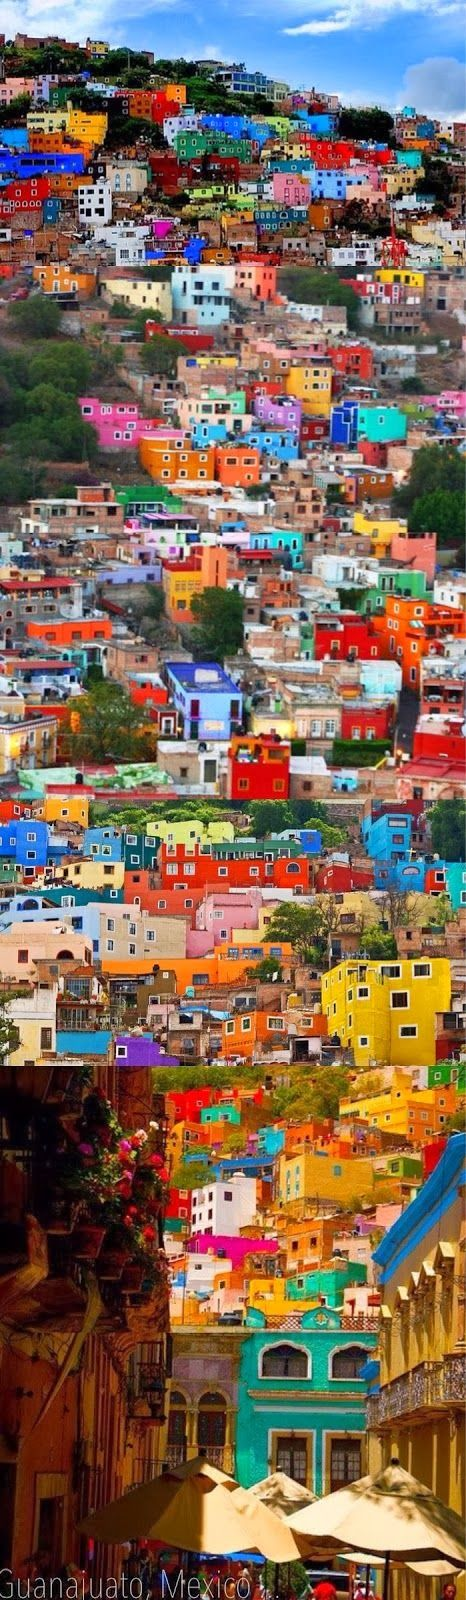 My Blood Home <3 Can't be prettier than this!! Guanajuato, Mexico-most beautiful city Mexico has to hold!